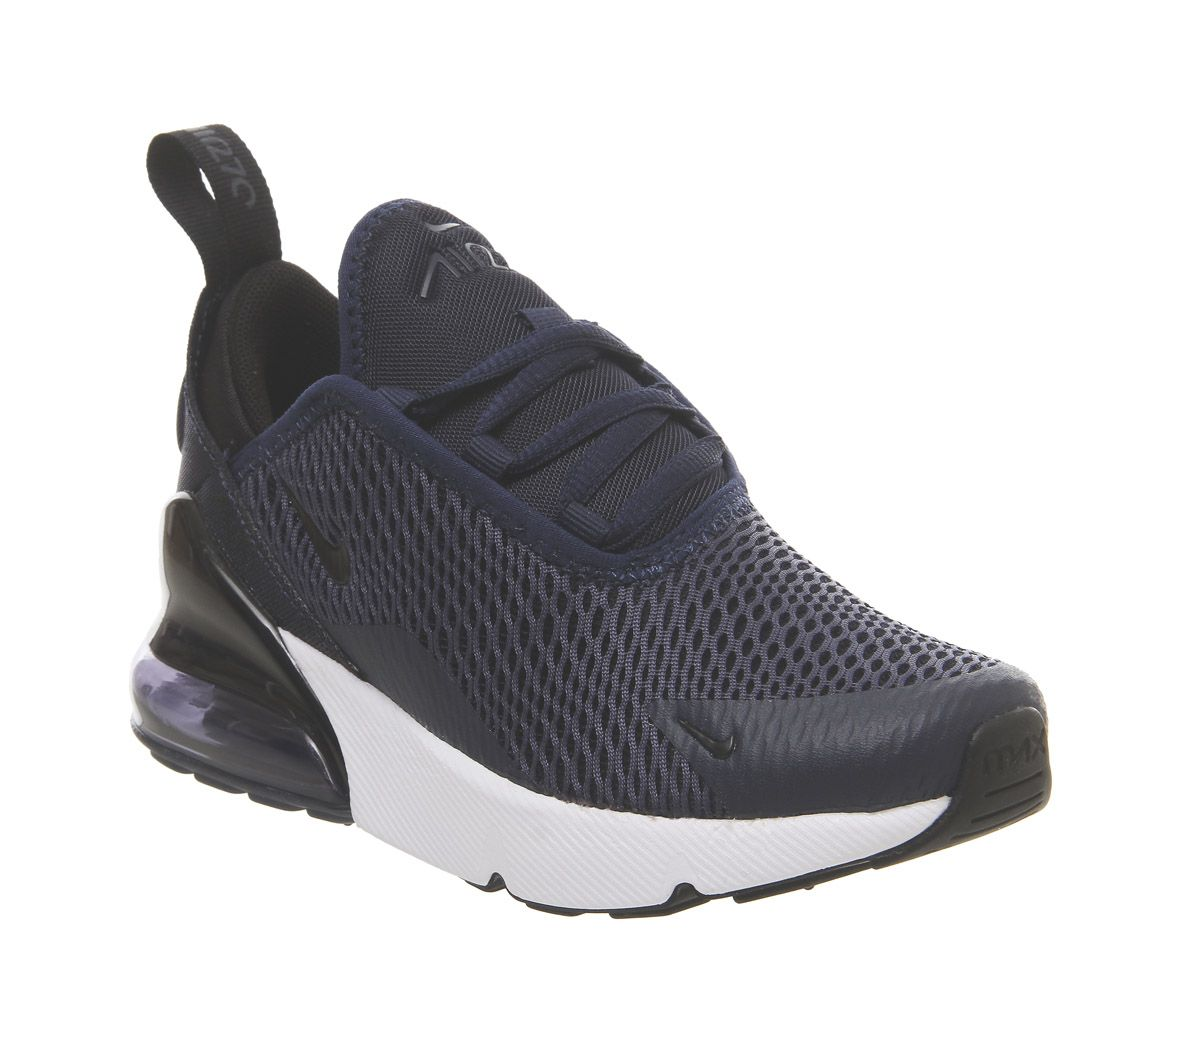 9d669b4a33 Nike Air Max 270 Ps Trainers Midnight Navy Black White - Unisex